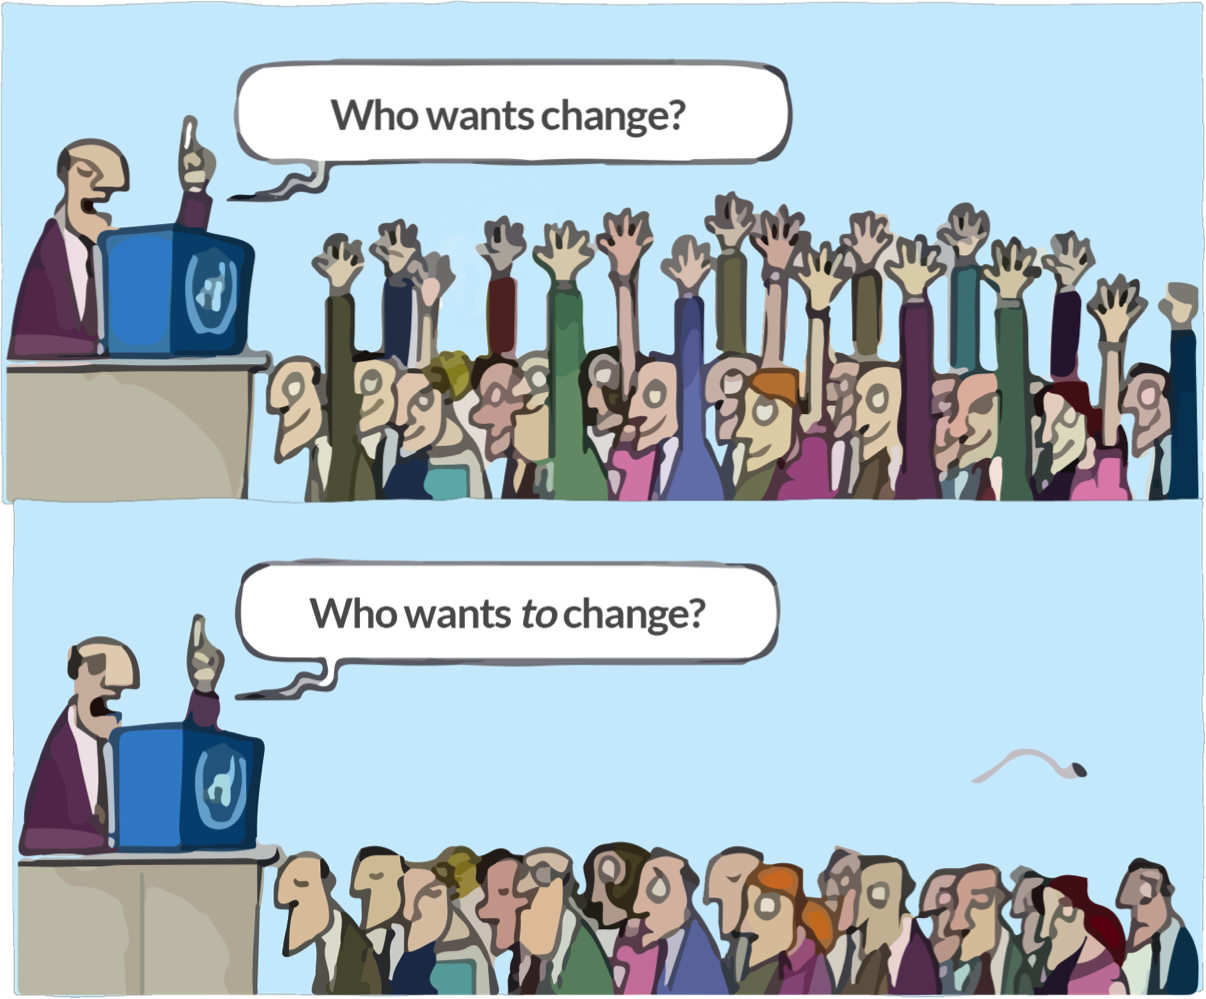 A crowd wanting to change, but unwilling to change themselves.